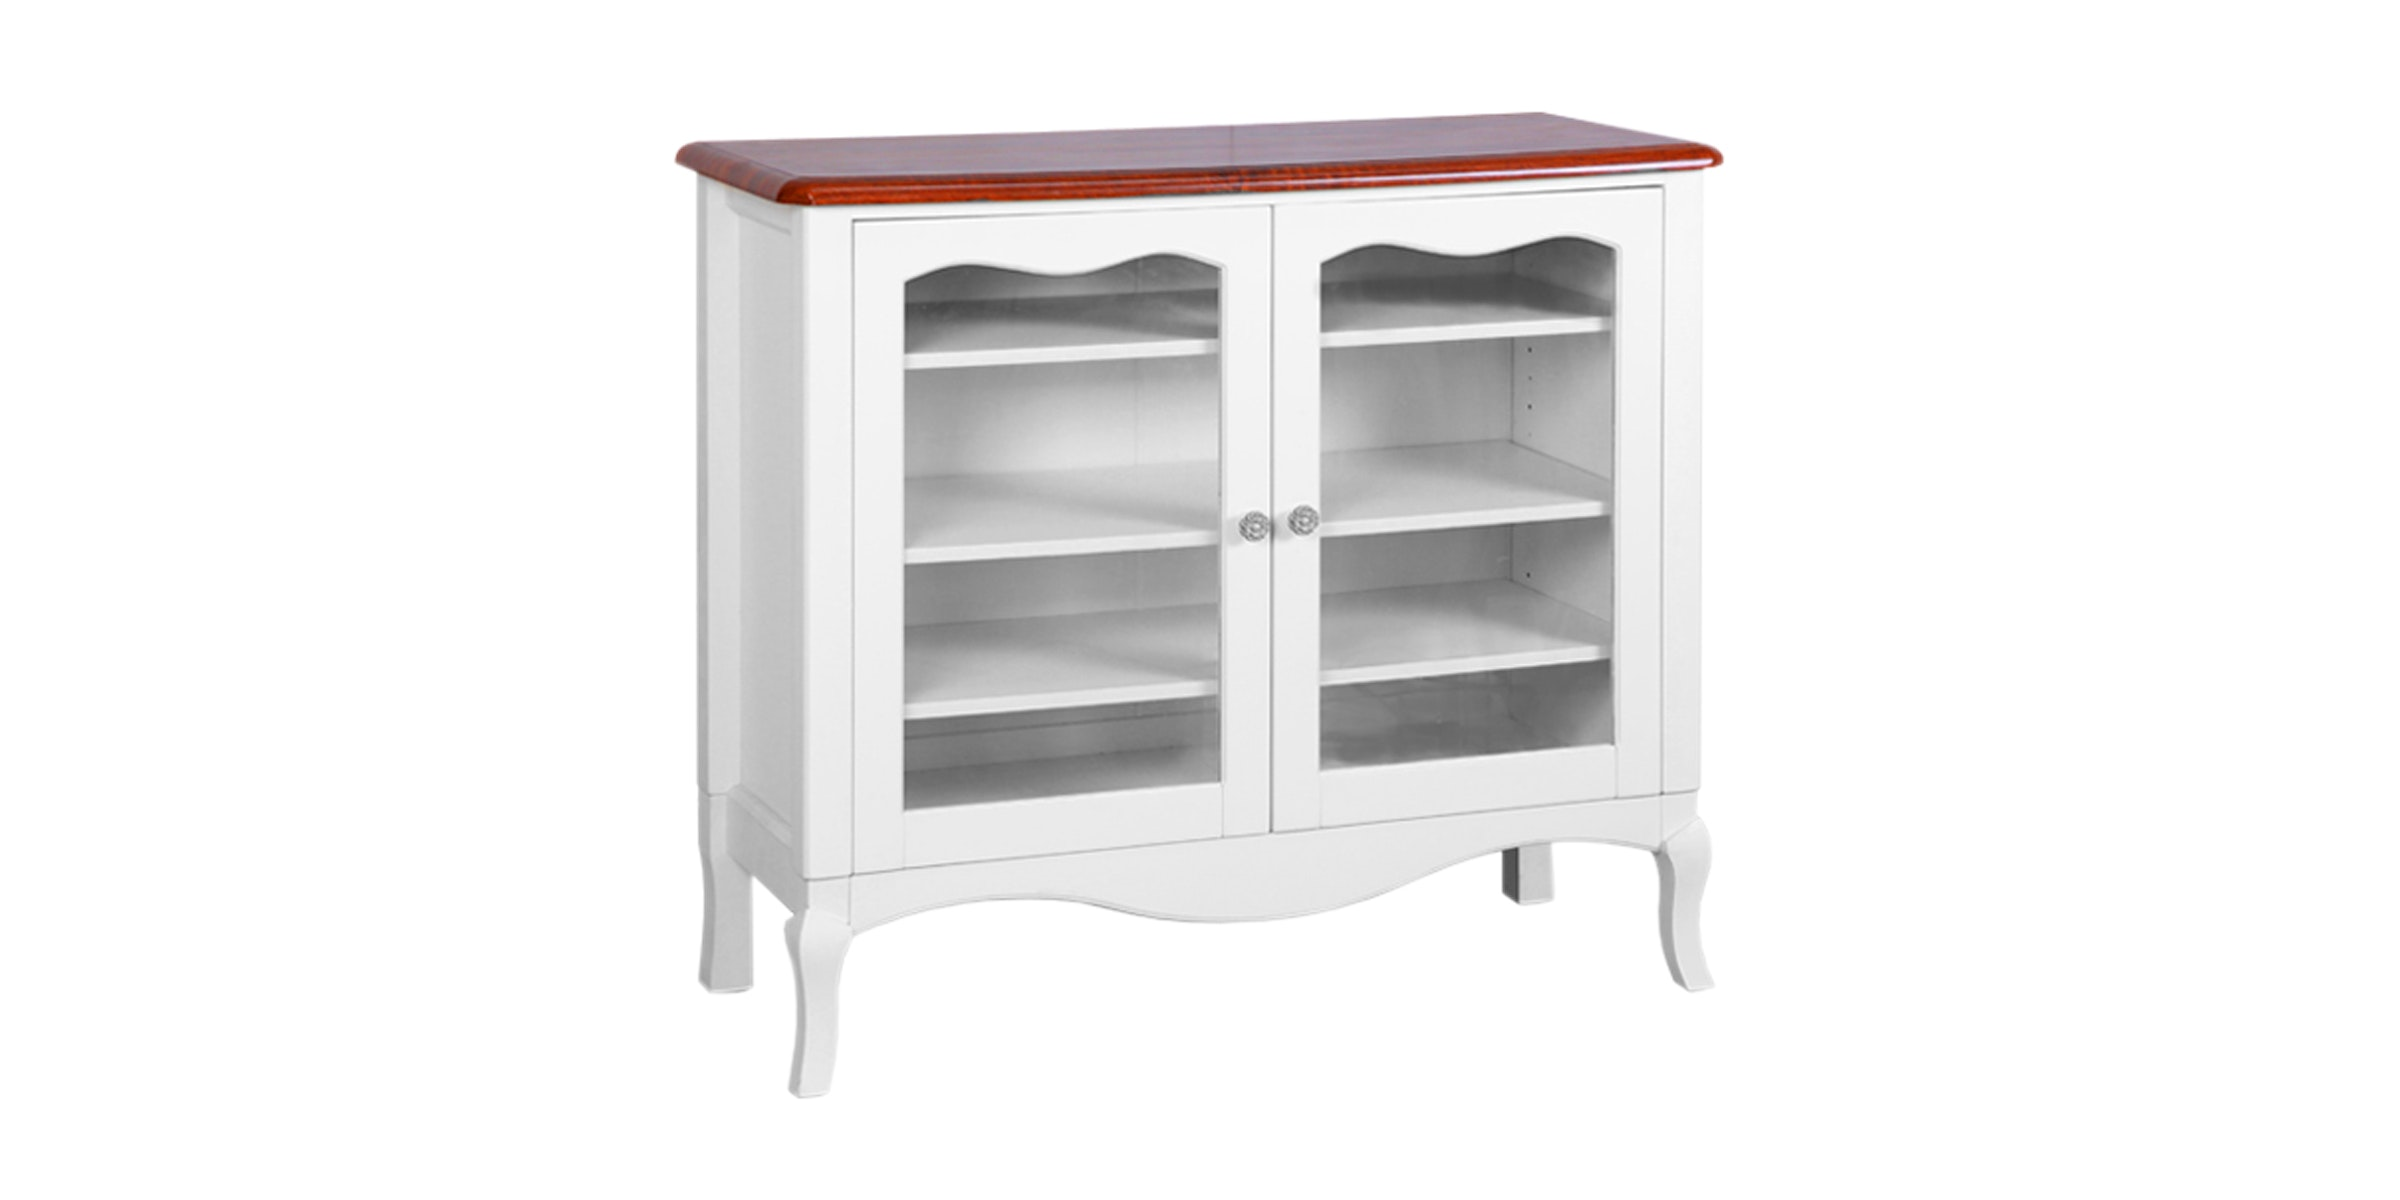 Olympic Louvre Series - Shoe Rack